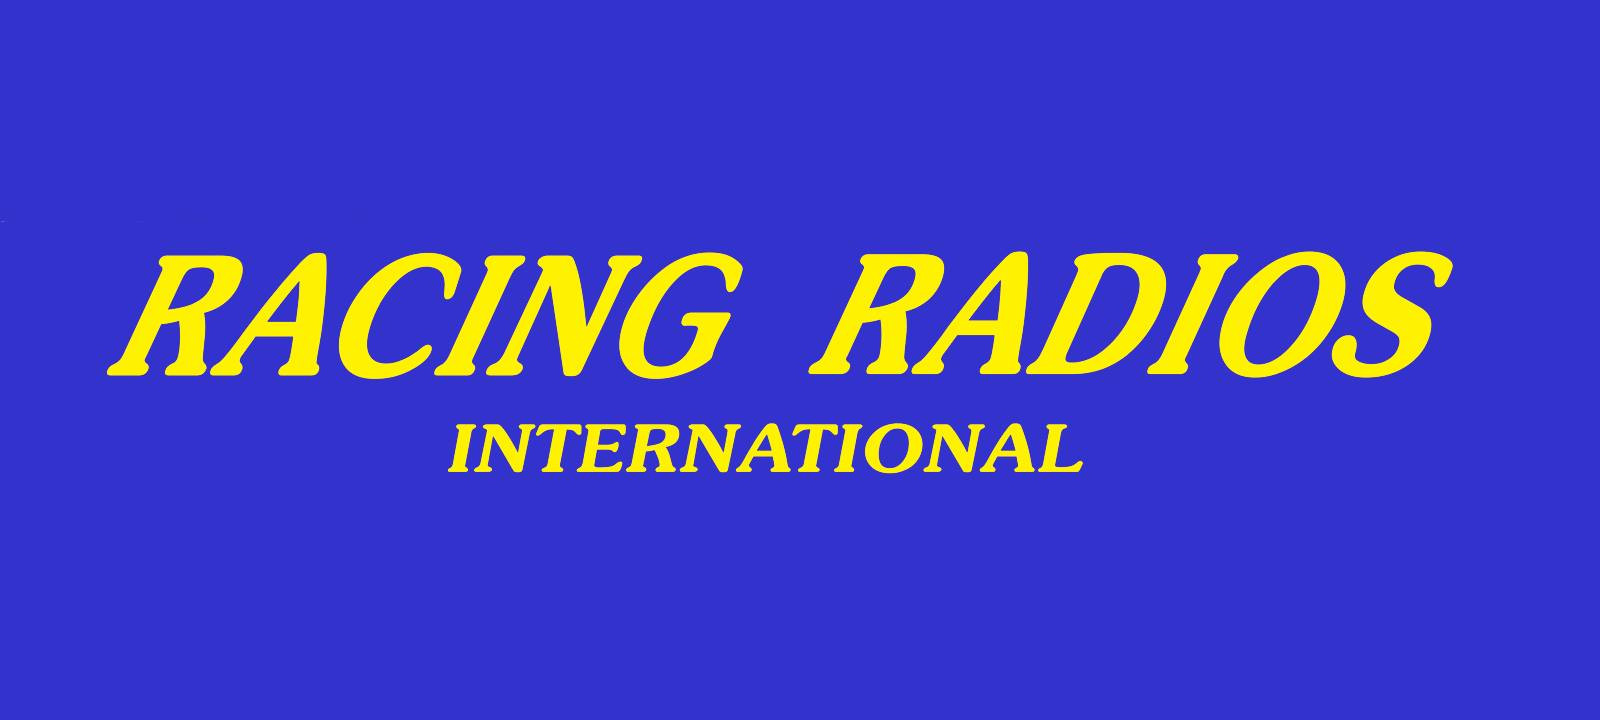 Racing Radio Internationnal